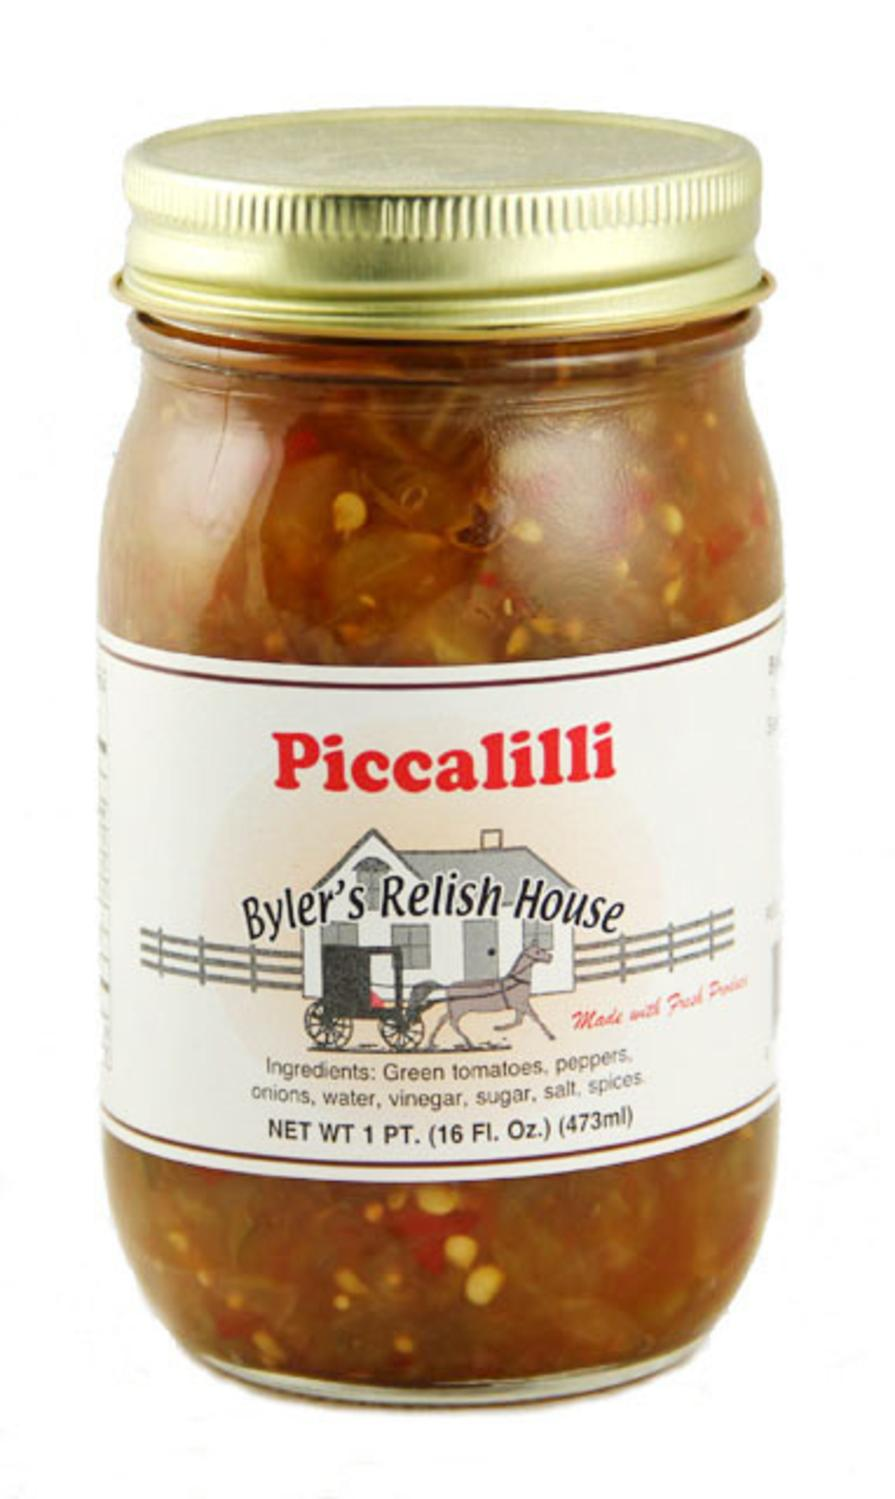 Byler's Relish House Homemade Amish Country Piccalilli 16 oz. by Byler's Relish House